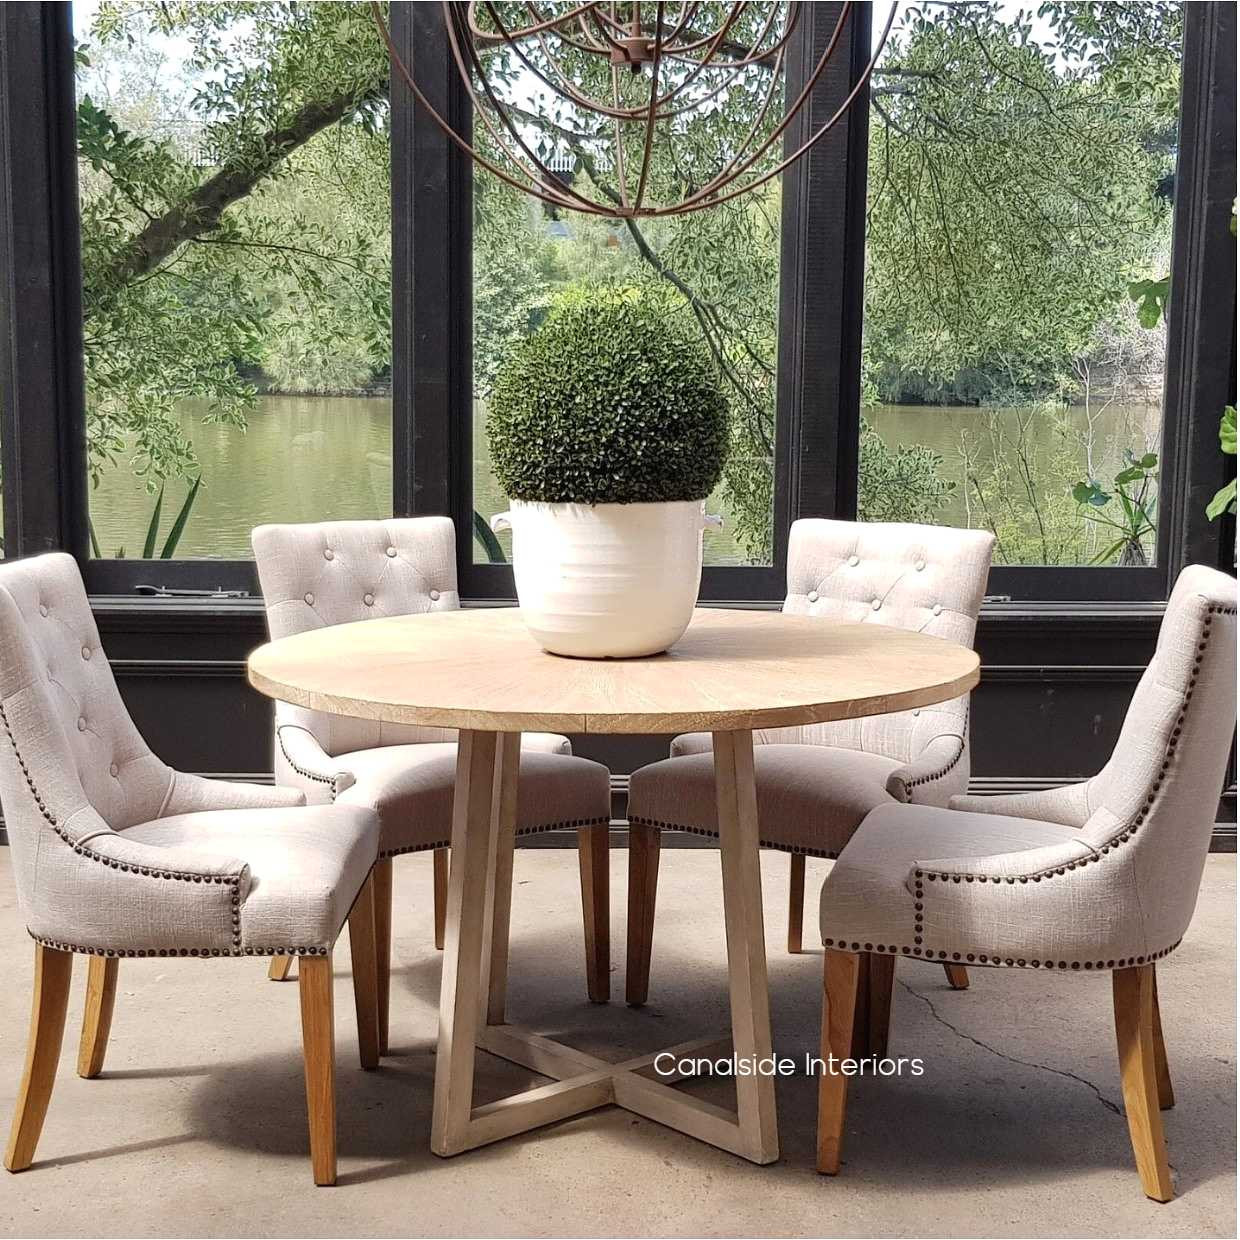 Downing Round Dining Table with Mosaic Top Canalside Interiors